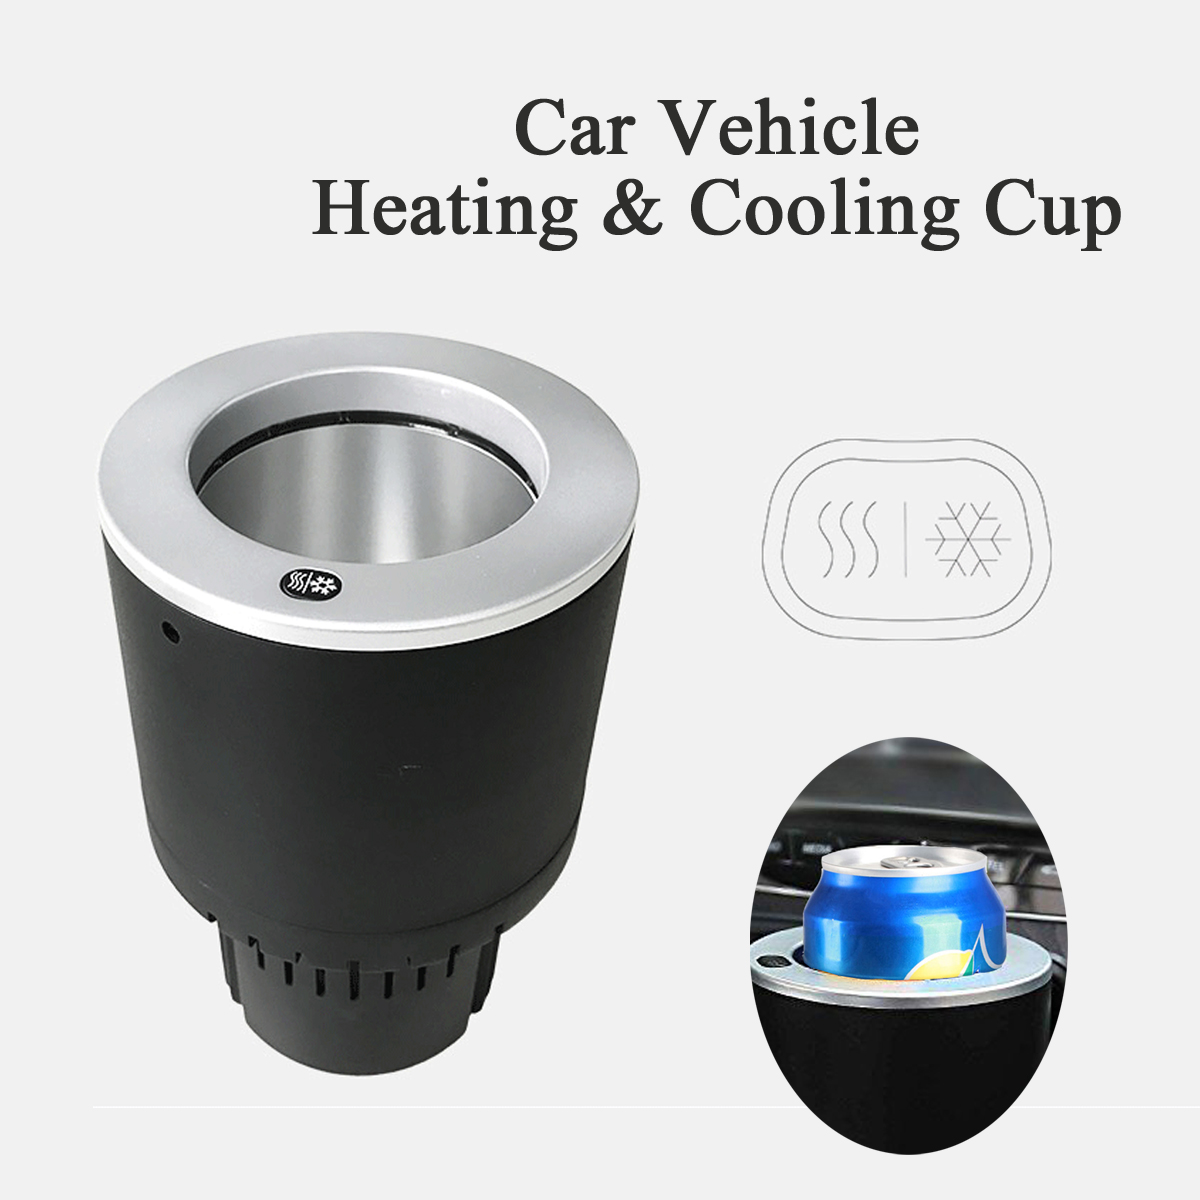 Portable 12V 20W Car Vehicle Heating Cooling Can Cup Holder Drink Heater Cooler